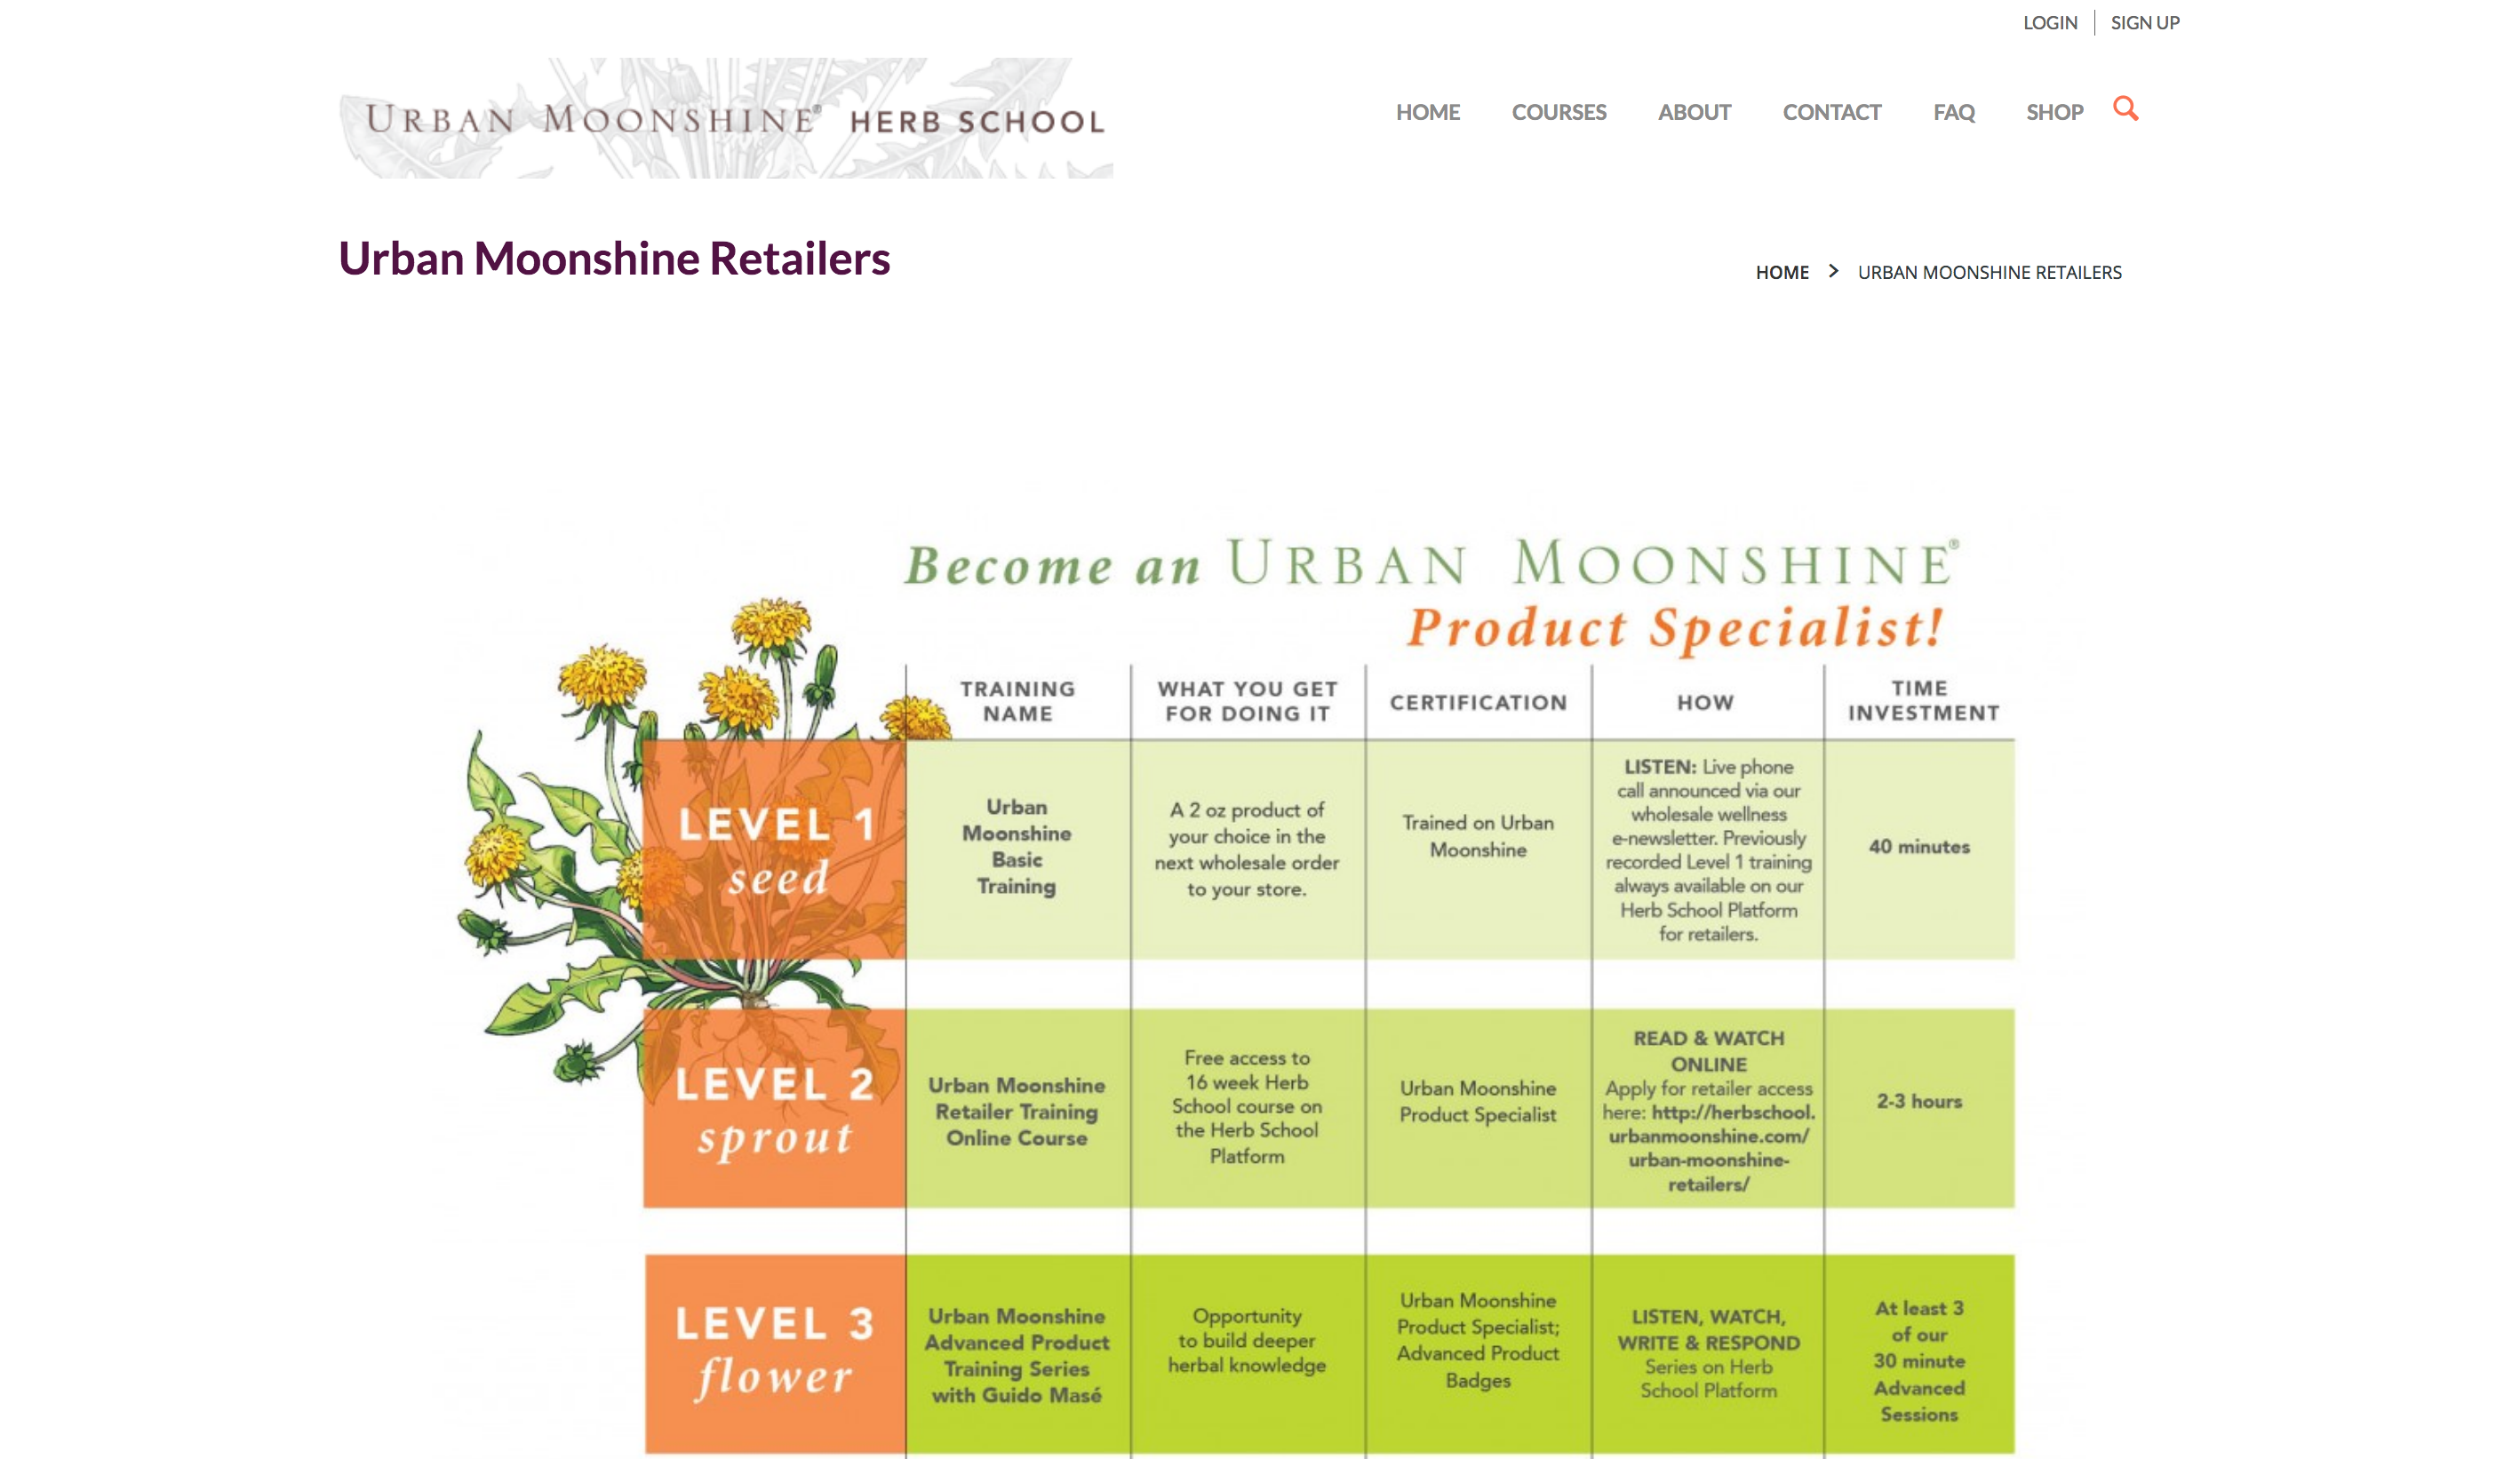 herbal herbology wellness website selling online courses with LMS eLearning platform